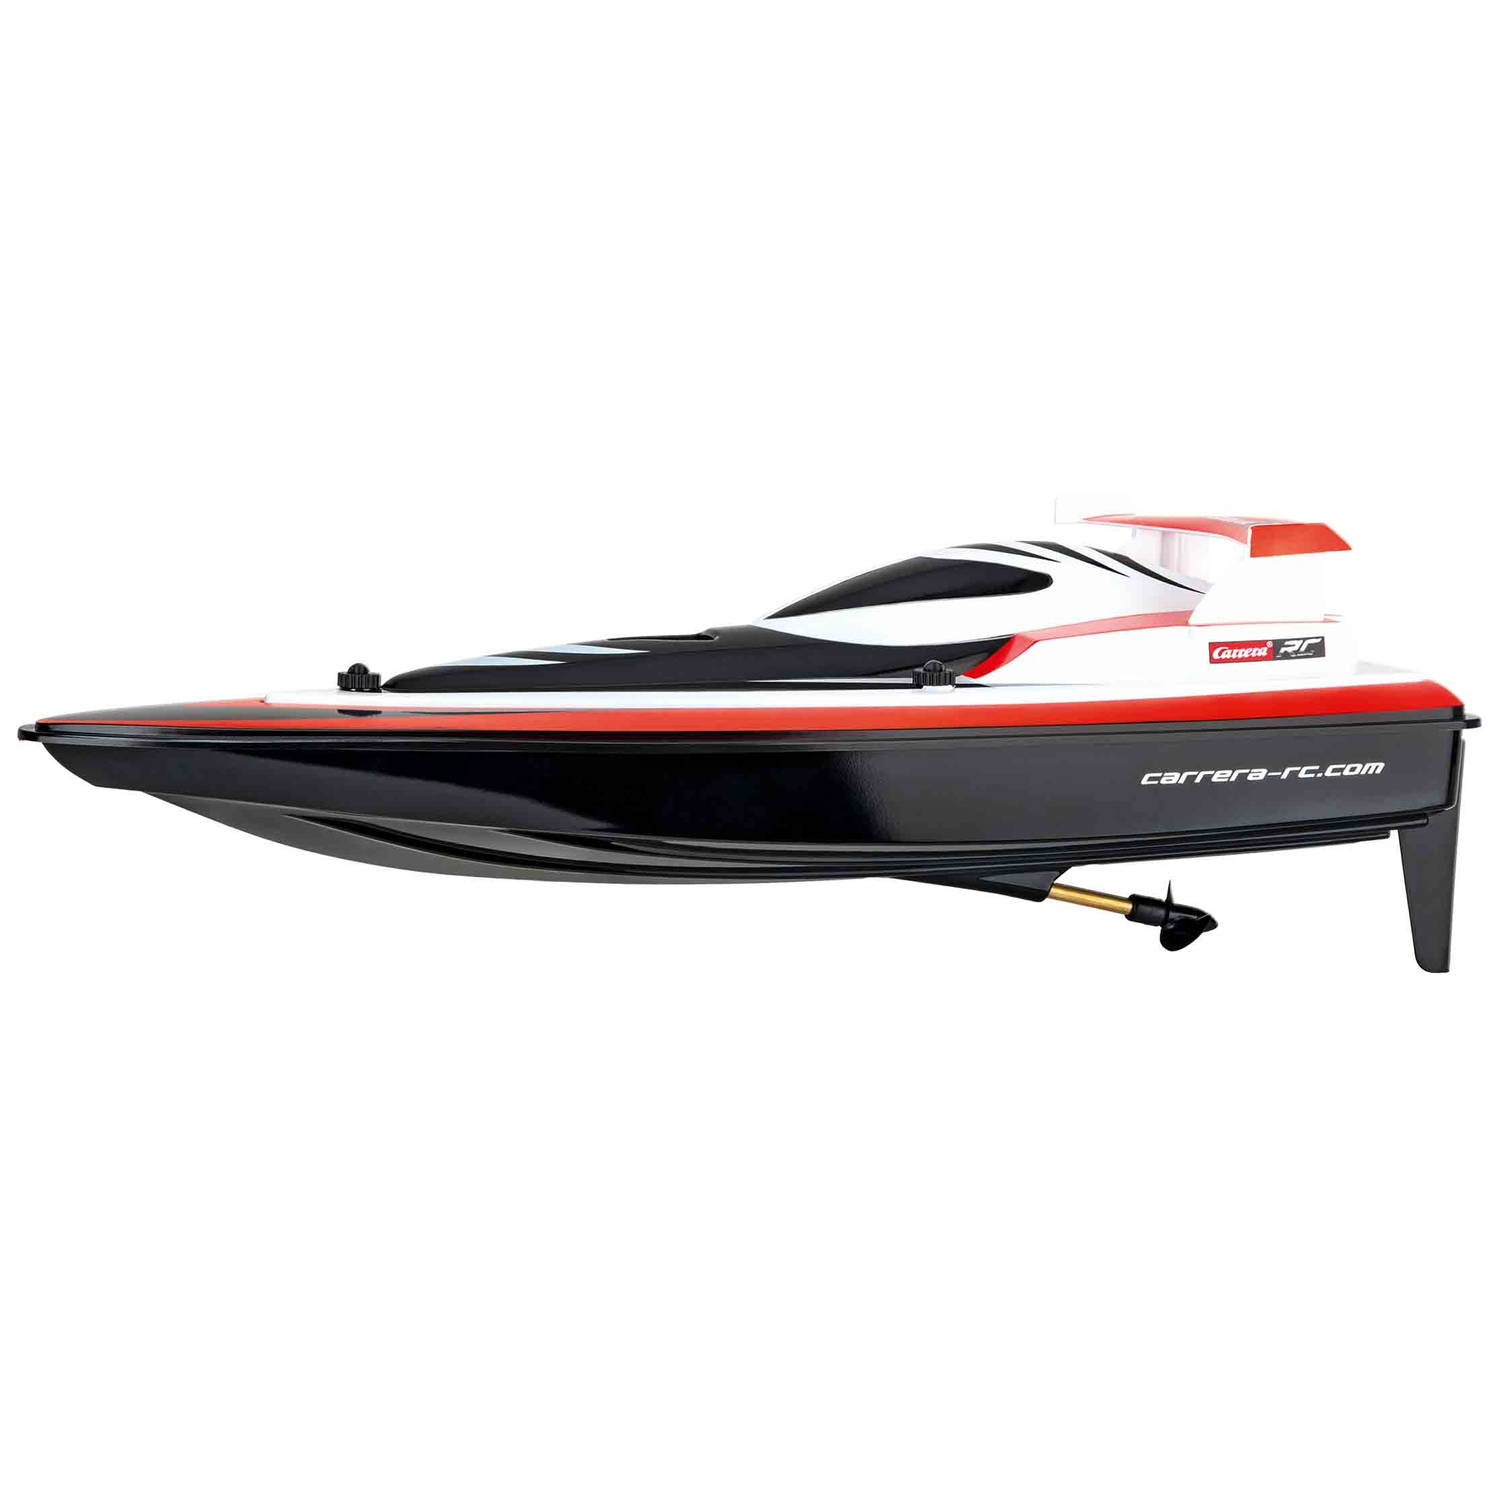 Carrera RC Boot - Race Boat Red - (25 km/h)